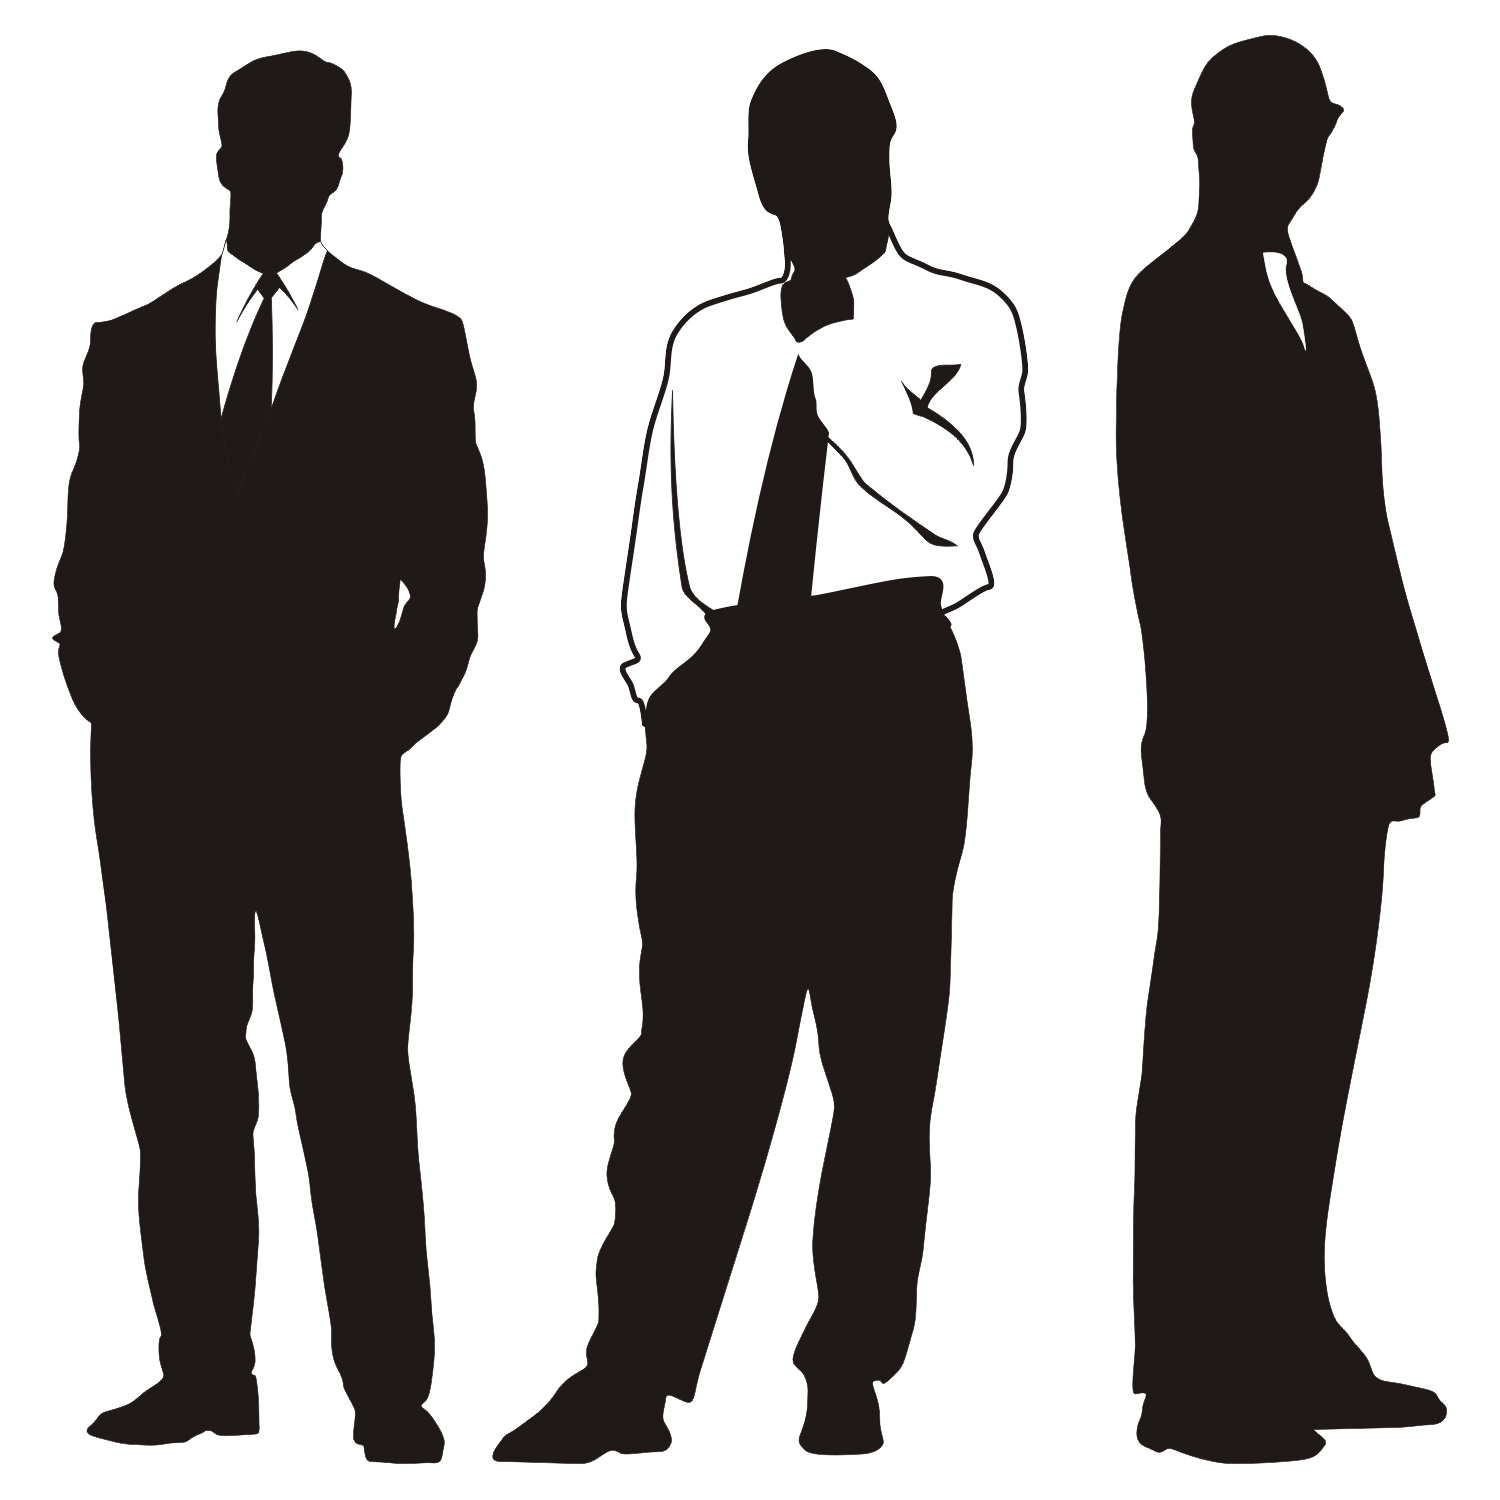 16 Person Silhouette Vector Images